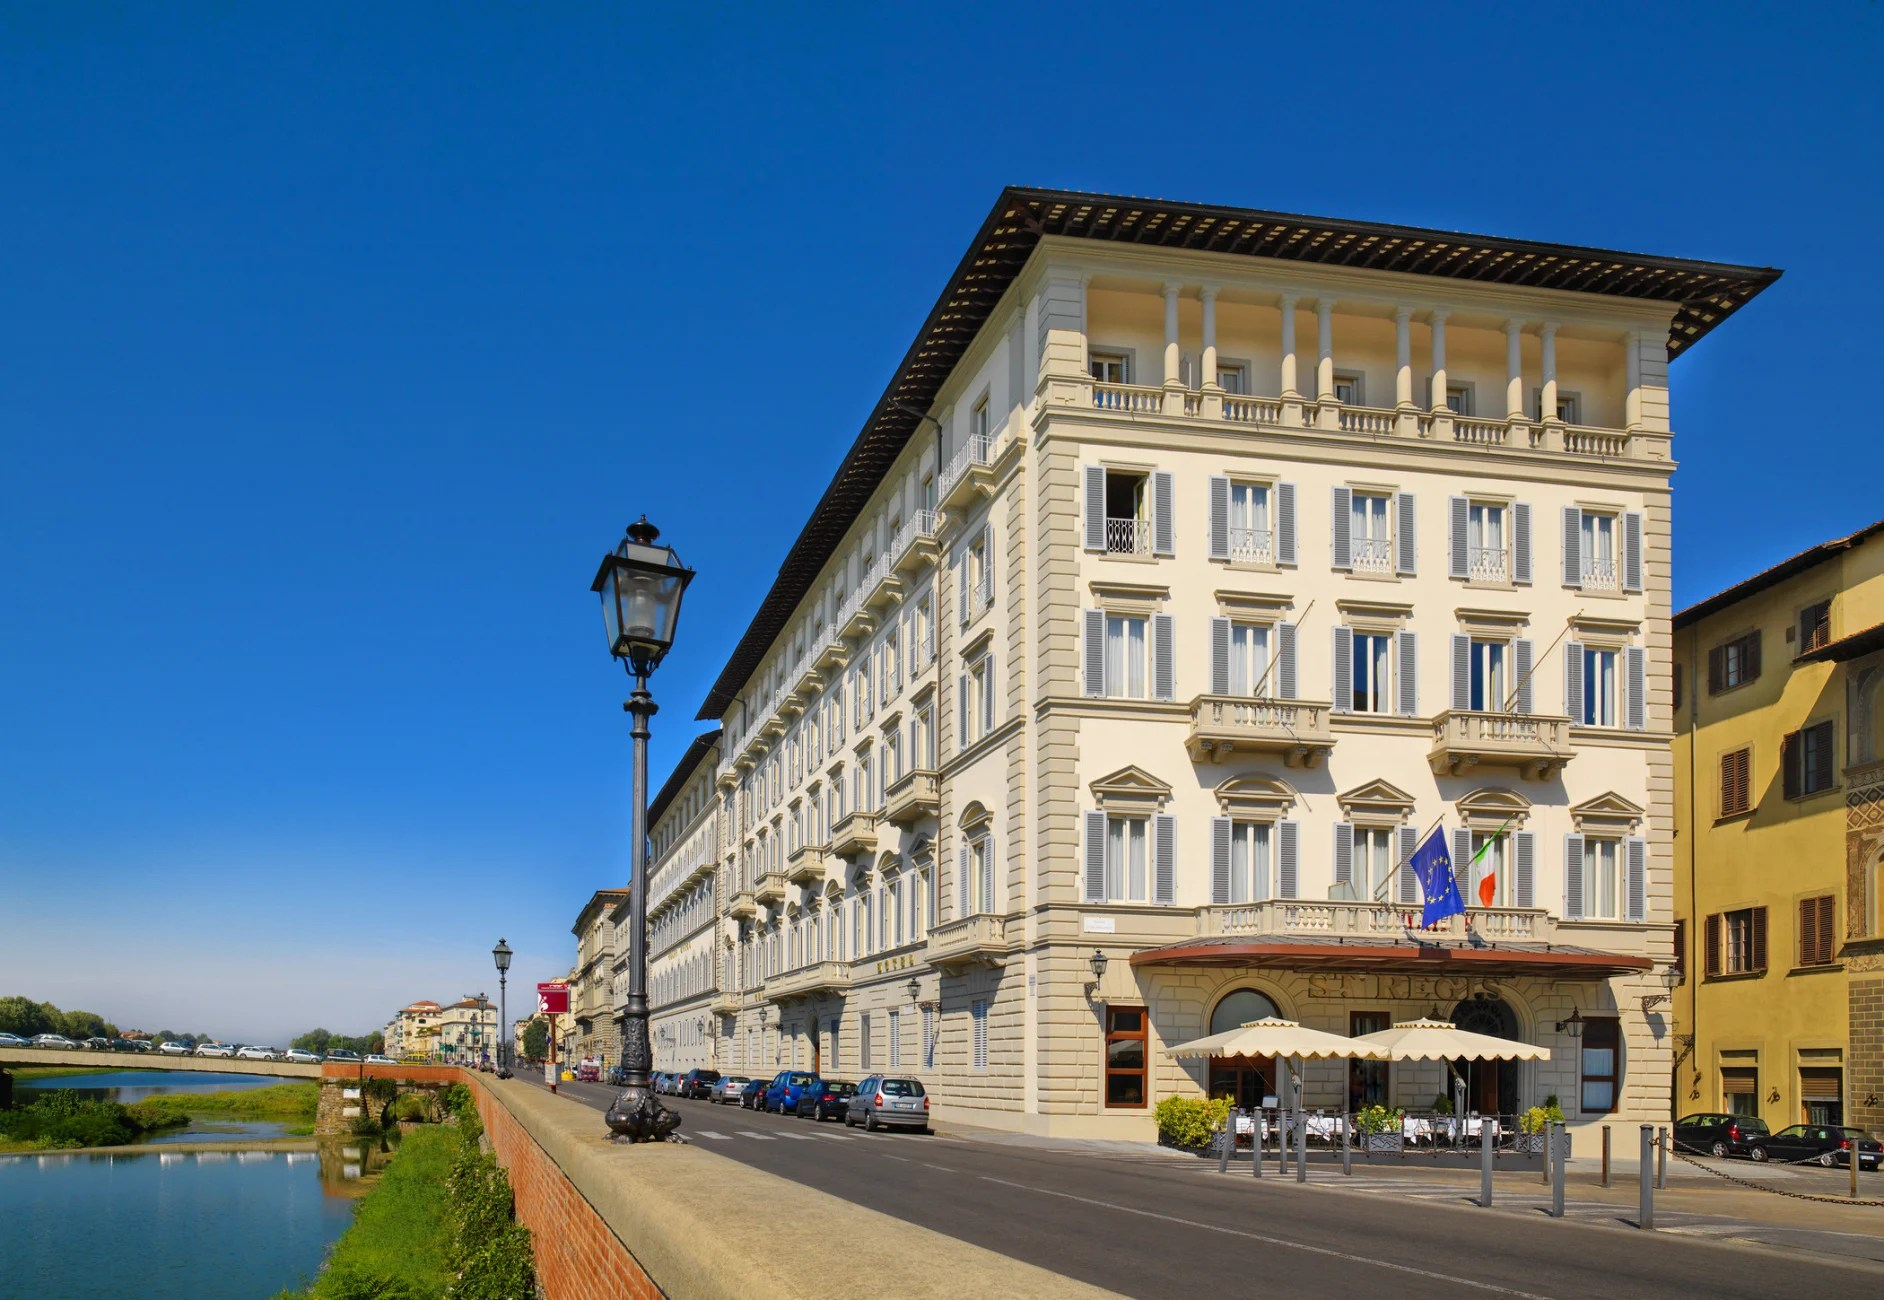 Hotel Di Florence Hotel The St Regis Florence Trivago Co Id